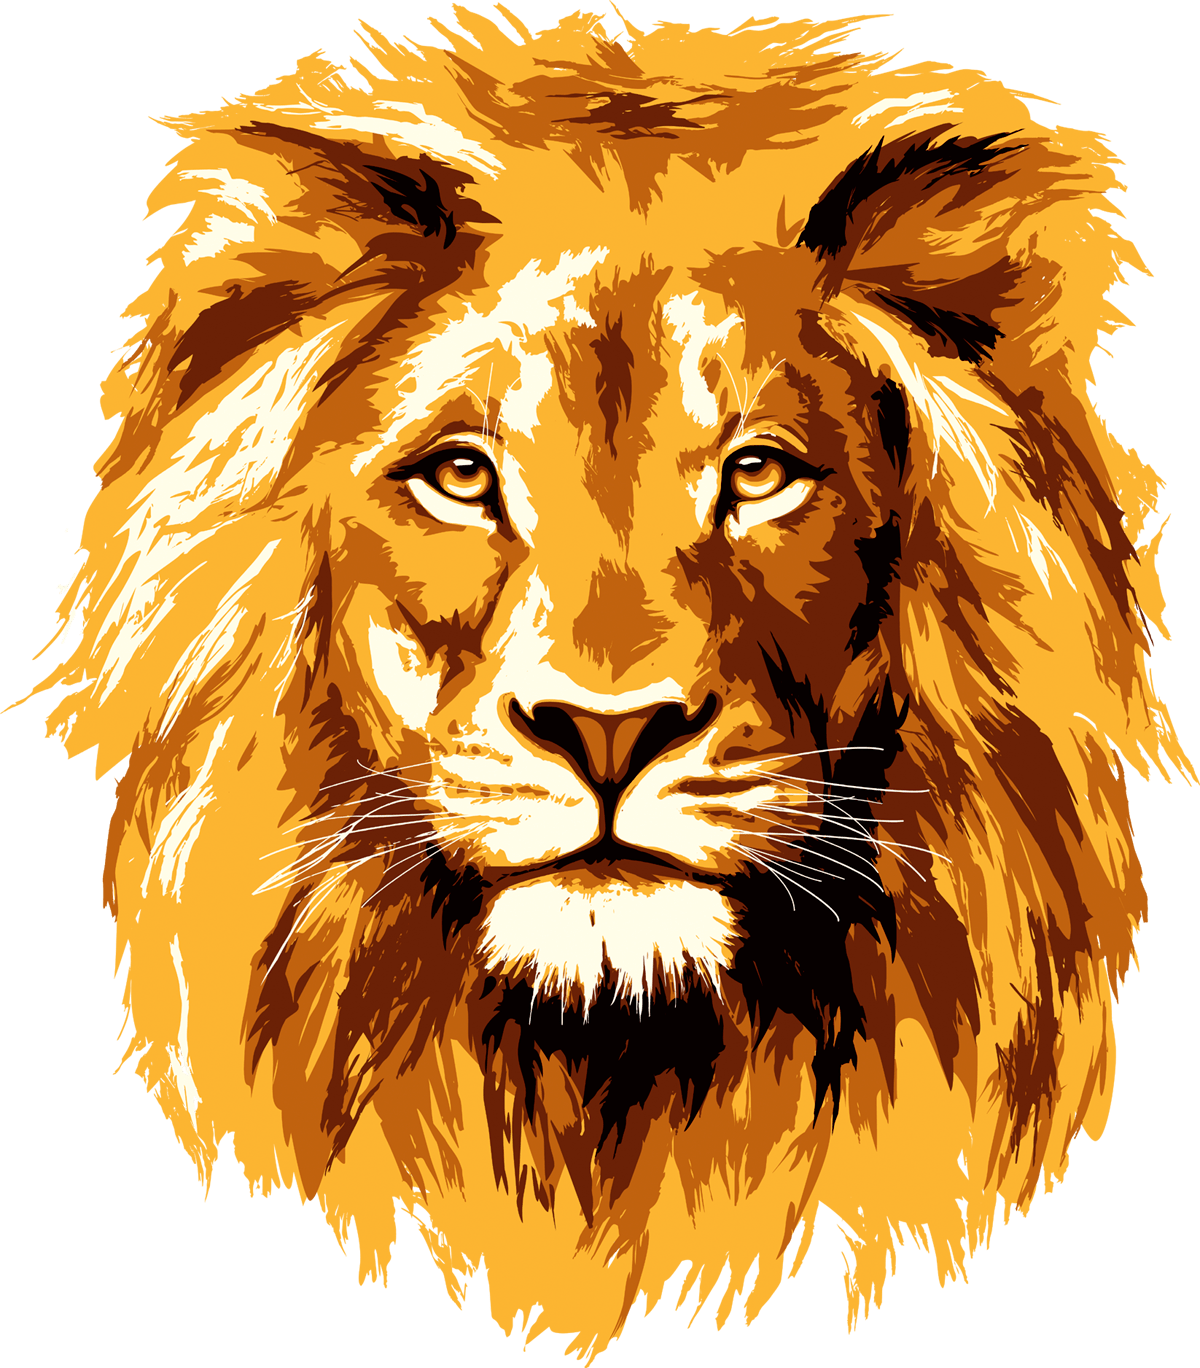 Lions Png Images And Lion Clipart Free Download Free Transparent Png Logos